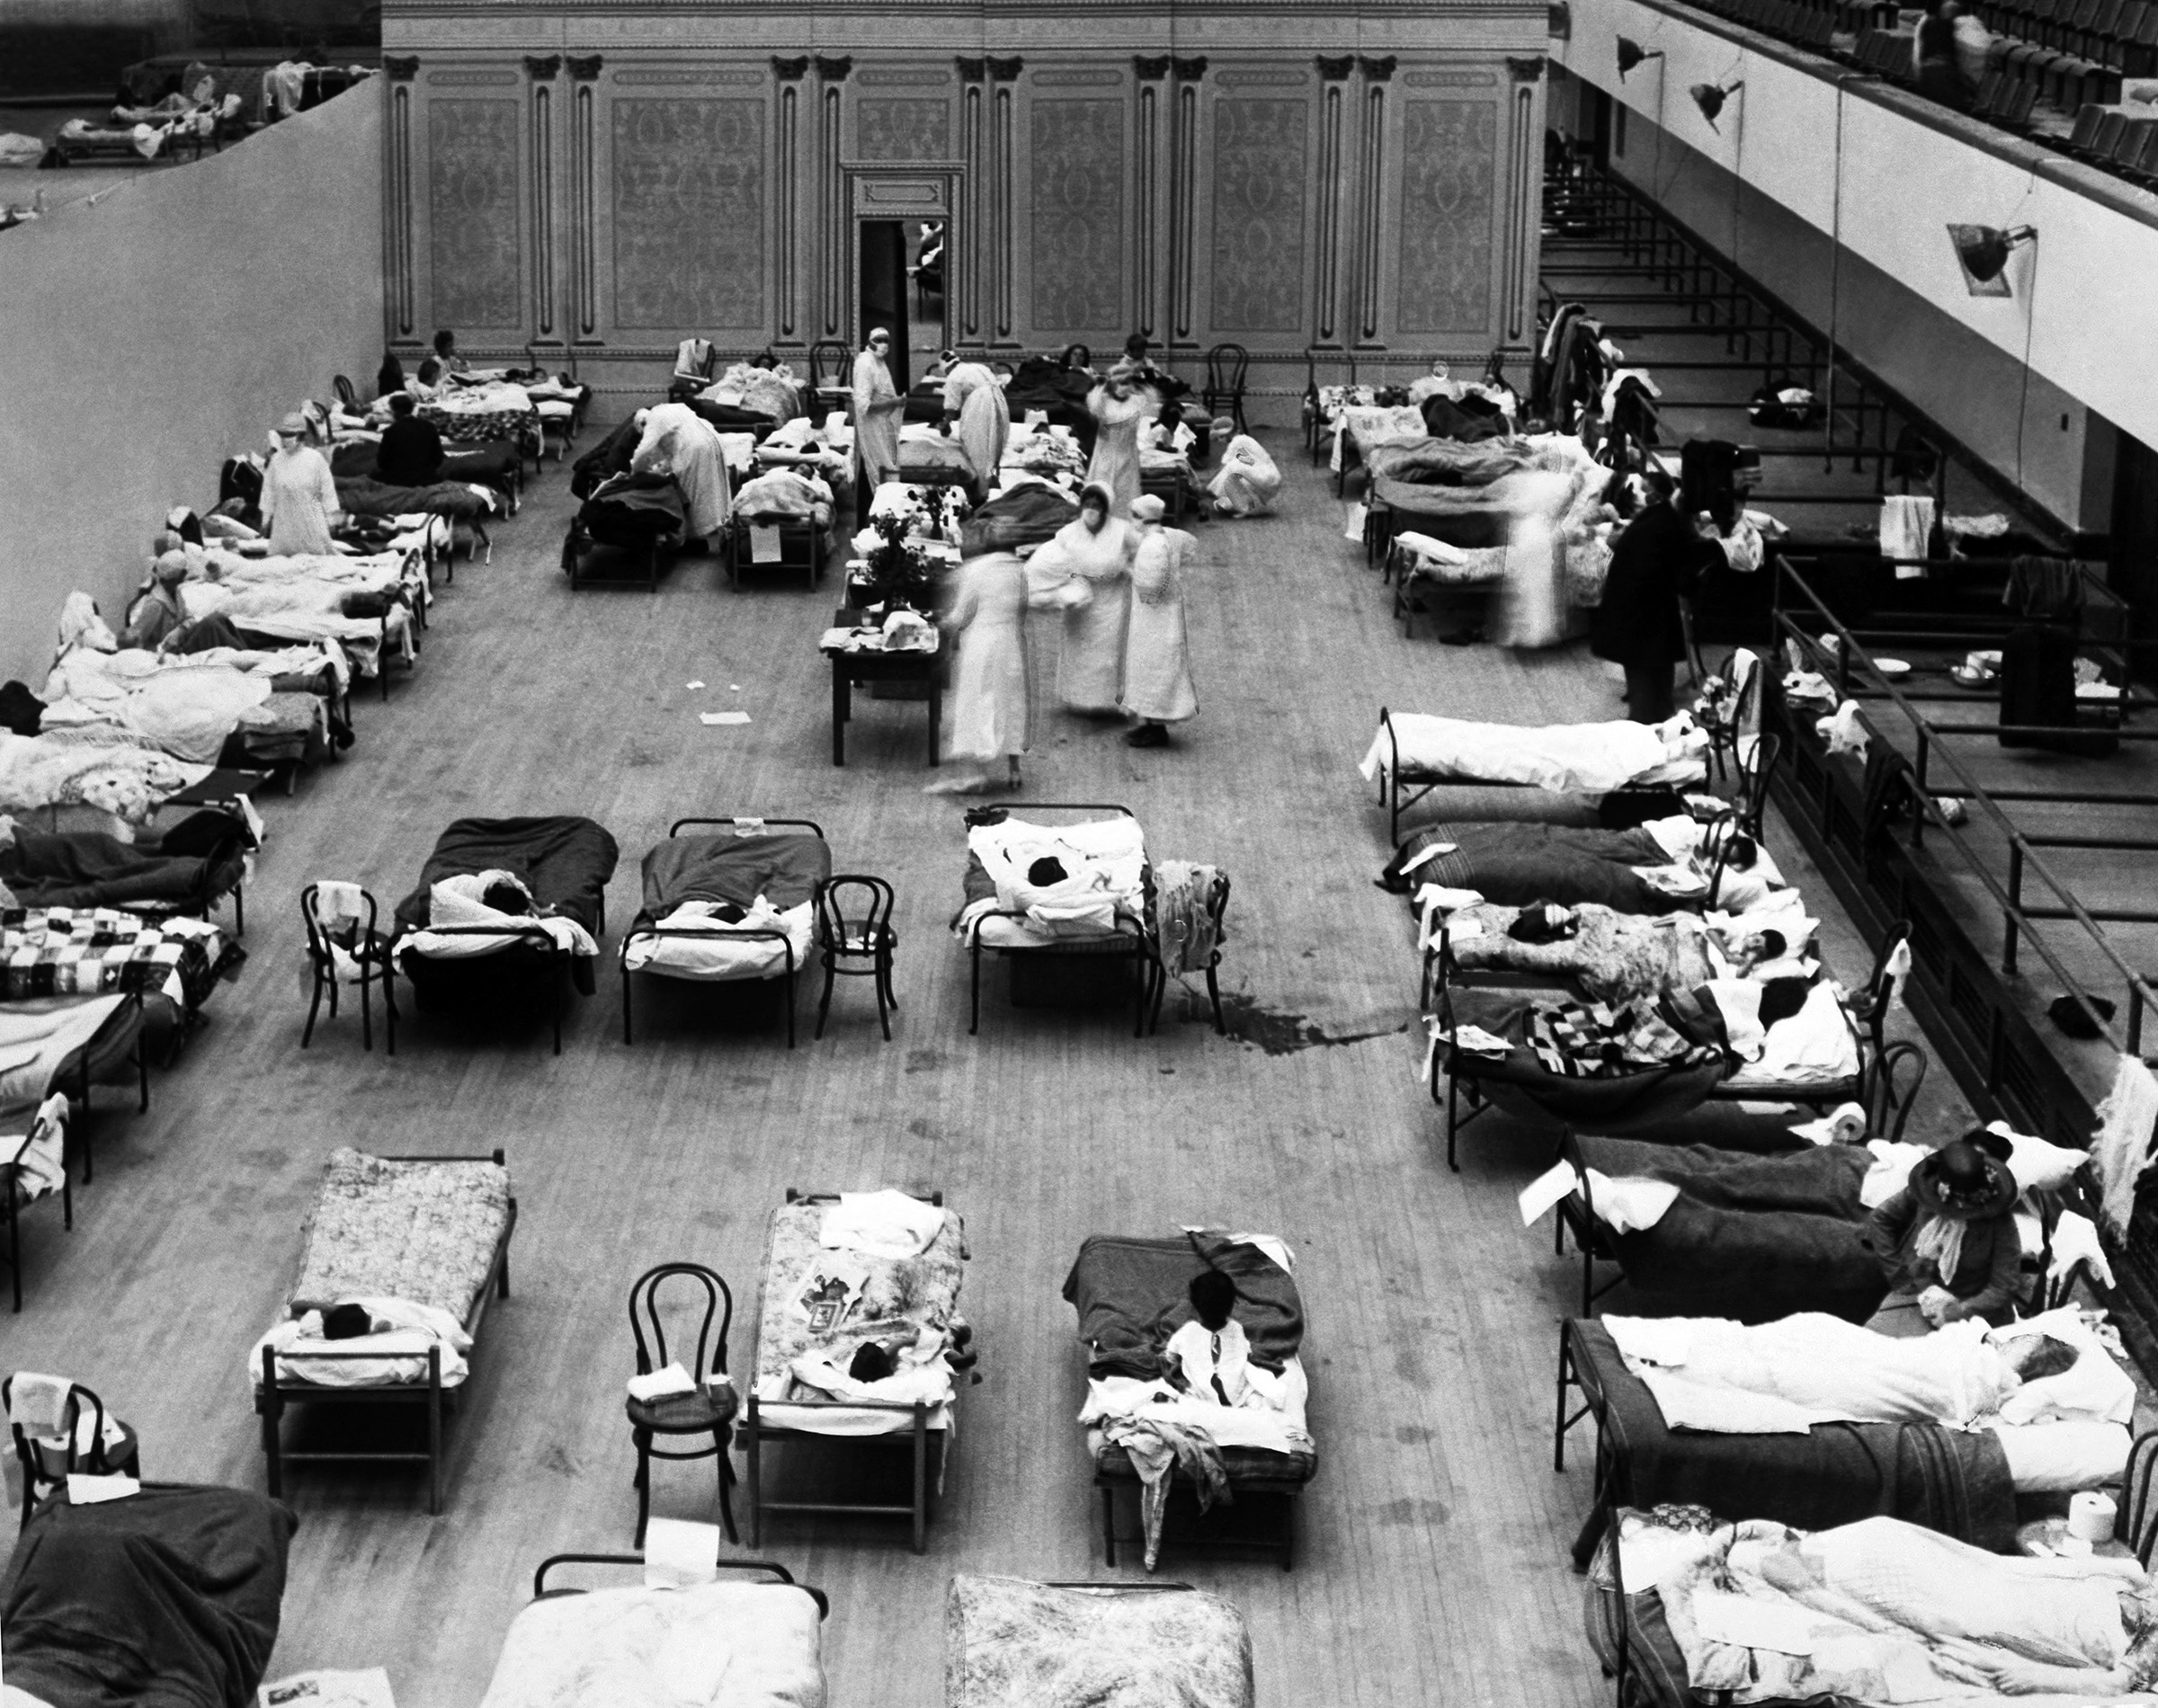 The Oakland Municipal Auditorium being used as a temporary hospital during the influenza pandemic of 1918, in Oakland, California.